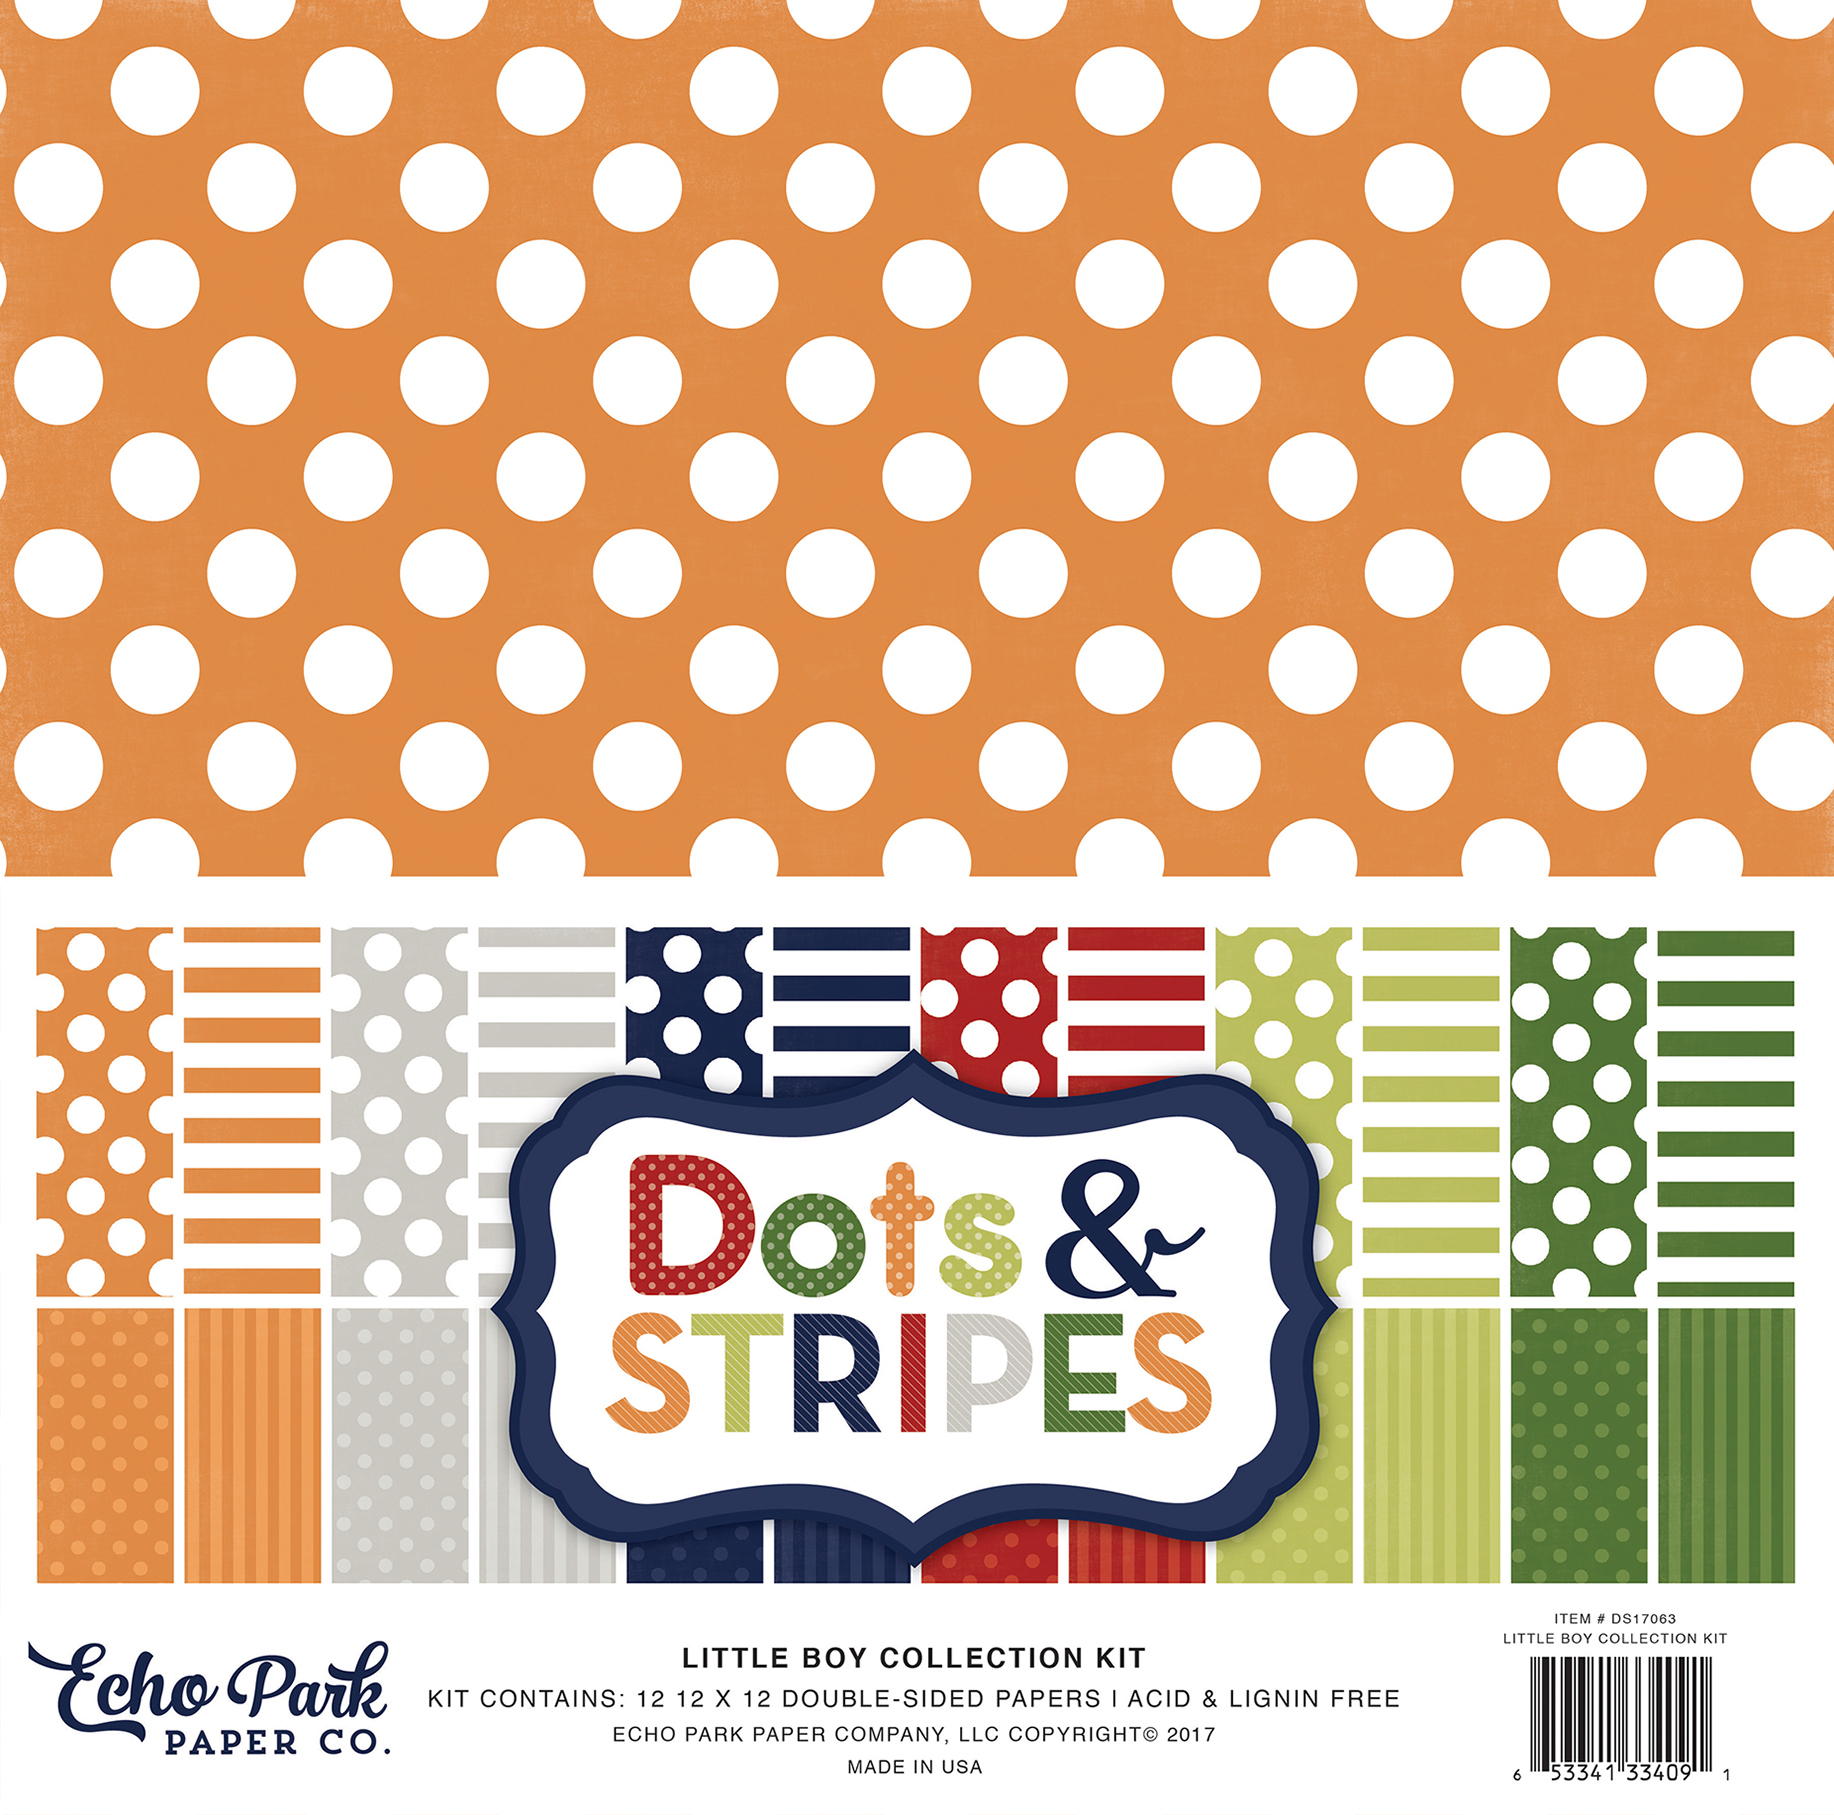 Dots & Stripes Little Boy